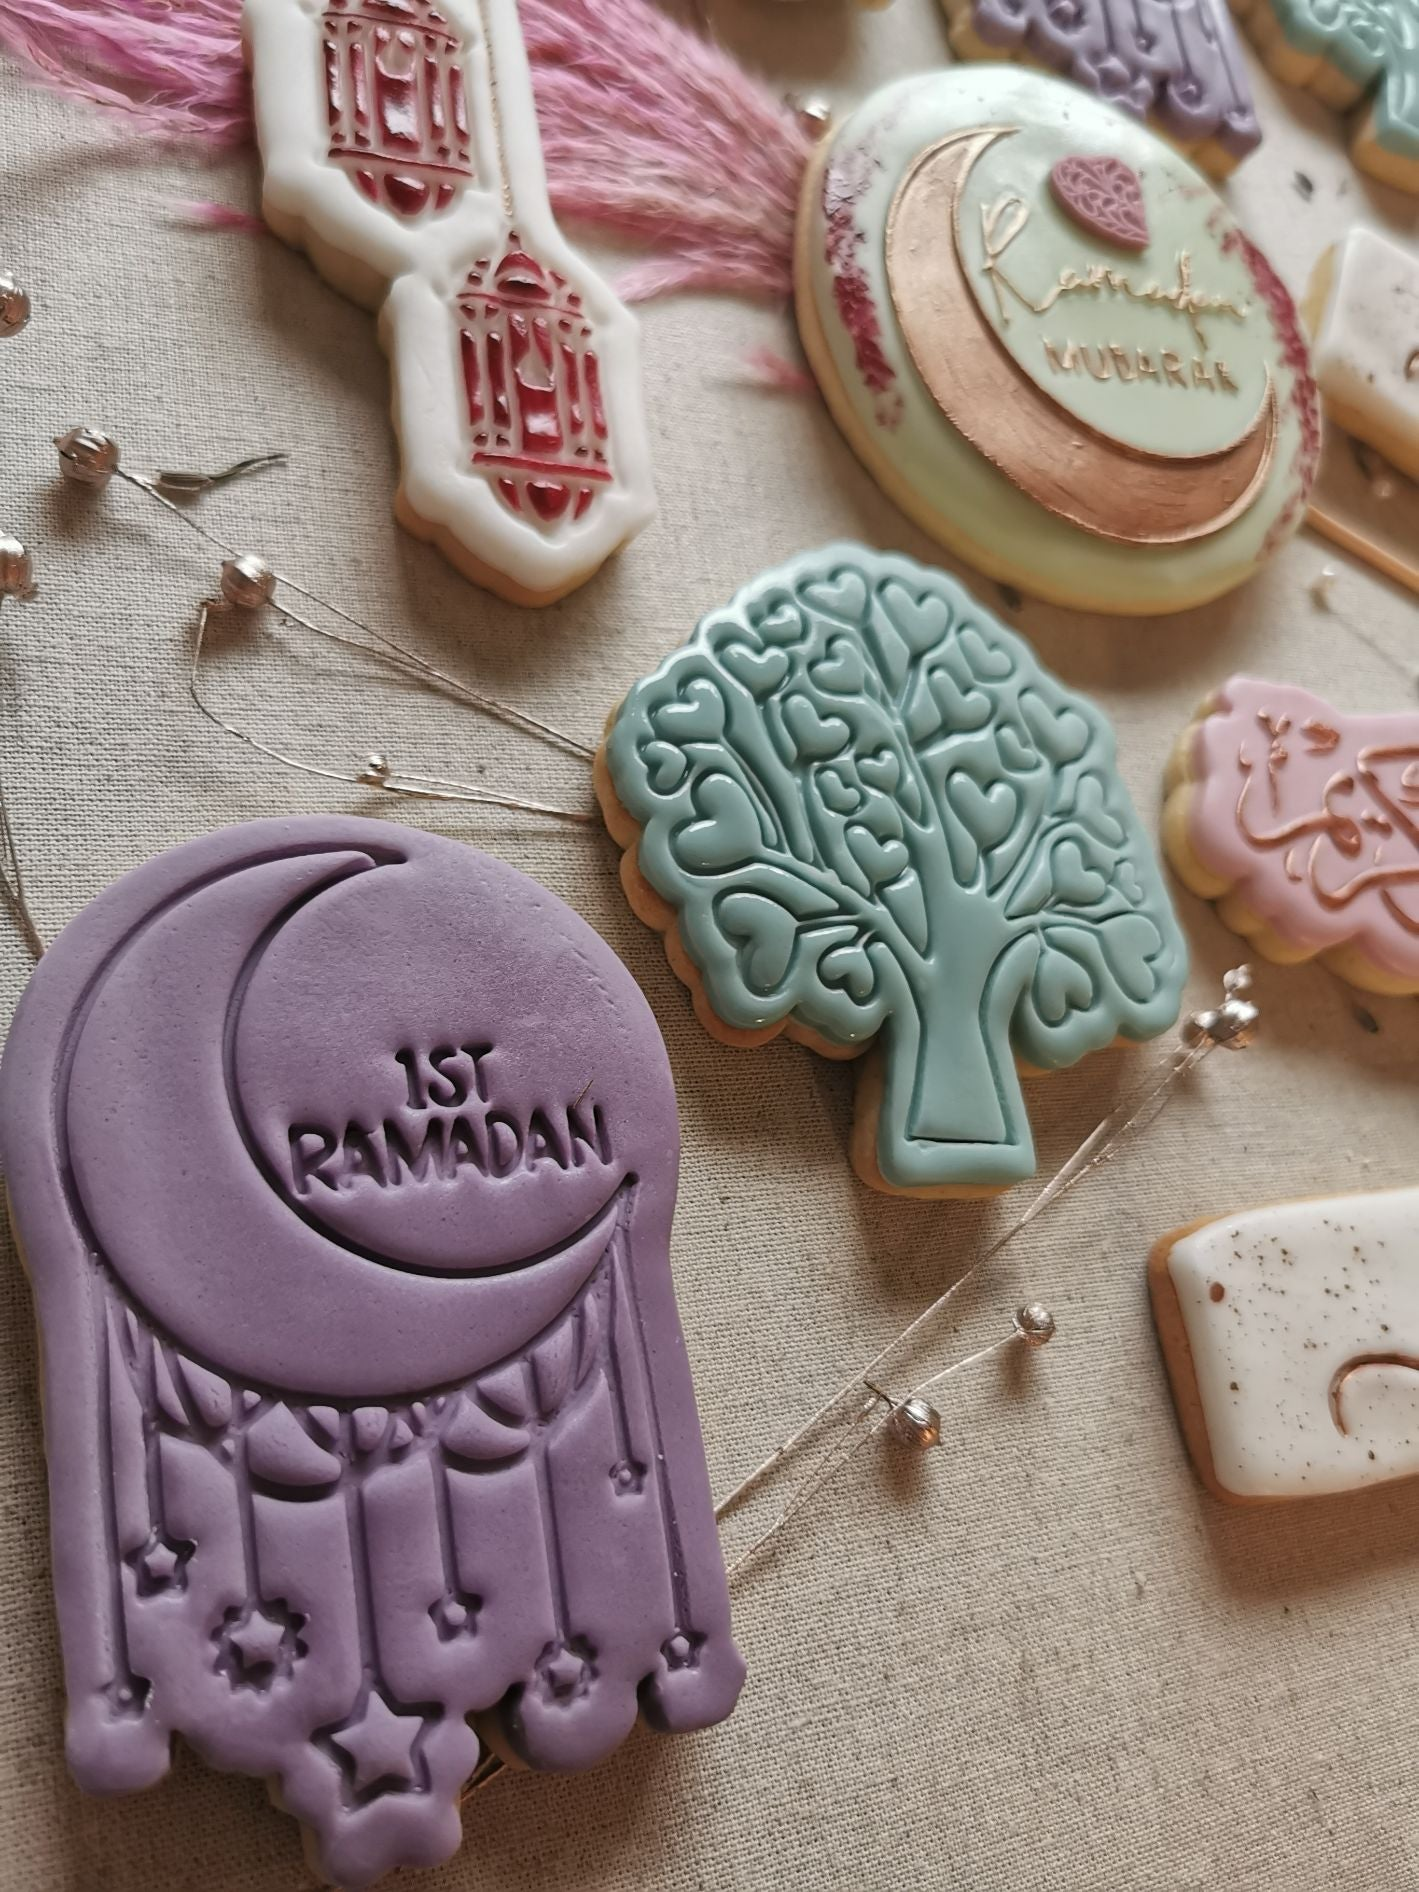 1st Ramadan with Moon Cookie Cutter and Stamp